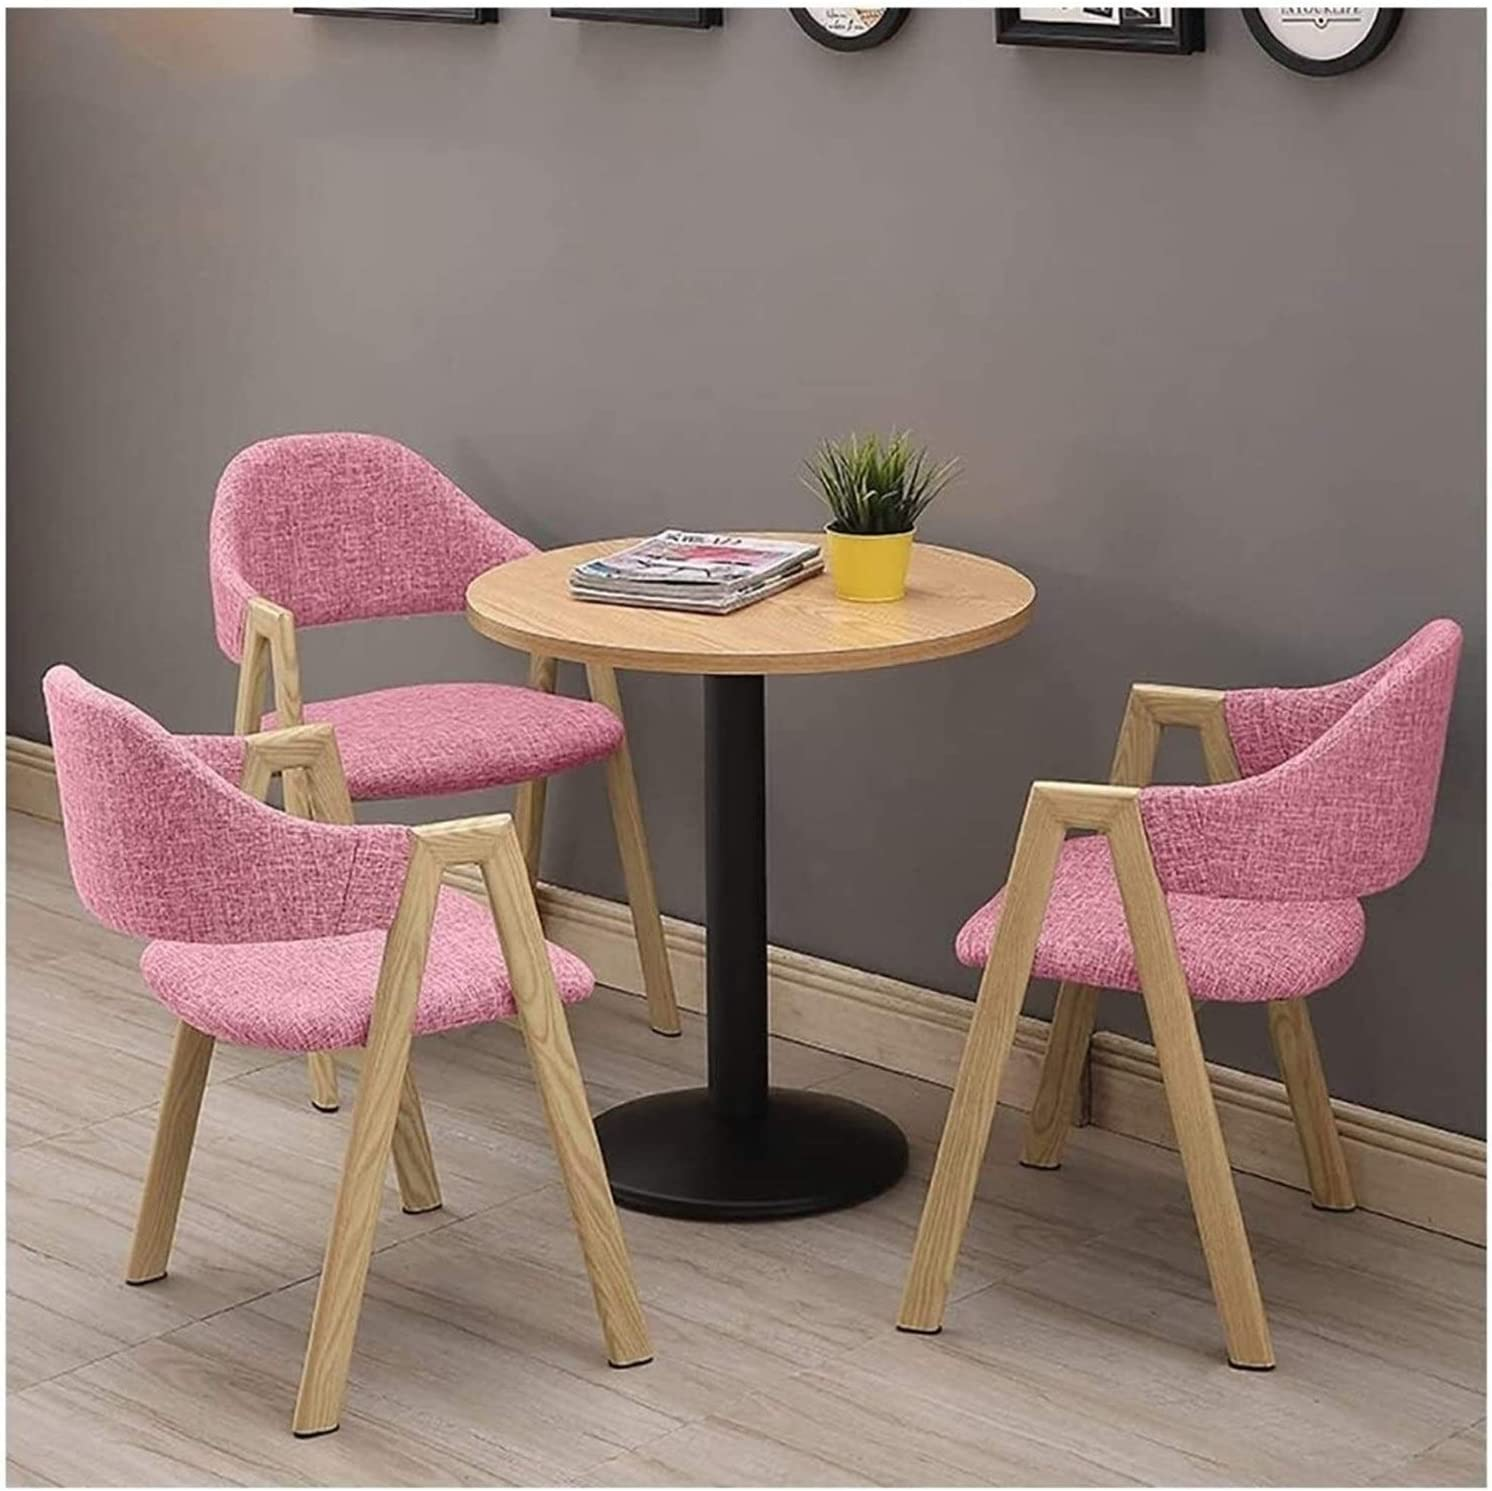 Department store Memphis Mall BUYT Office Reception Room Club Chair Ch Set Table and